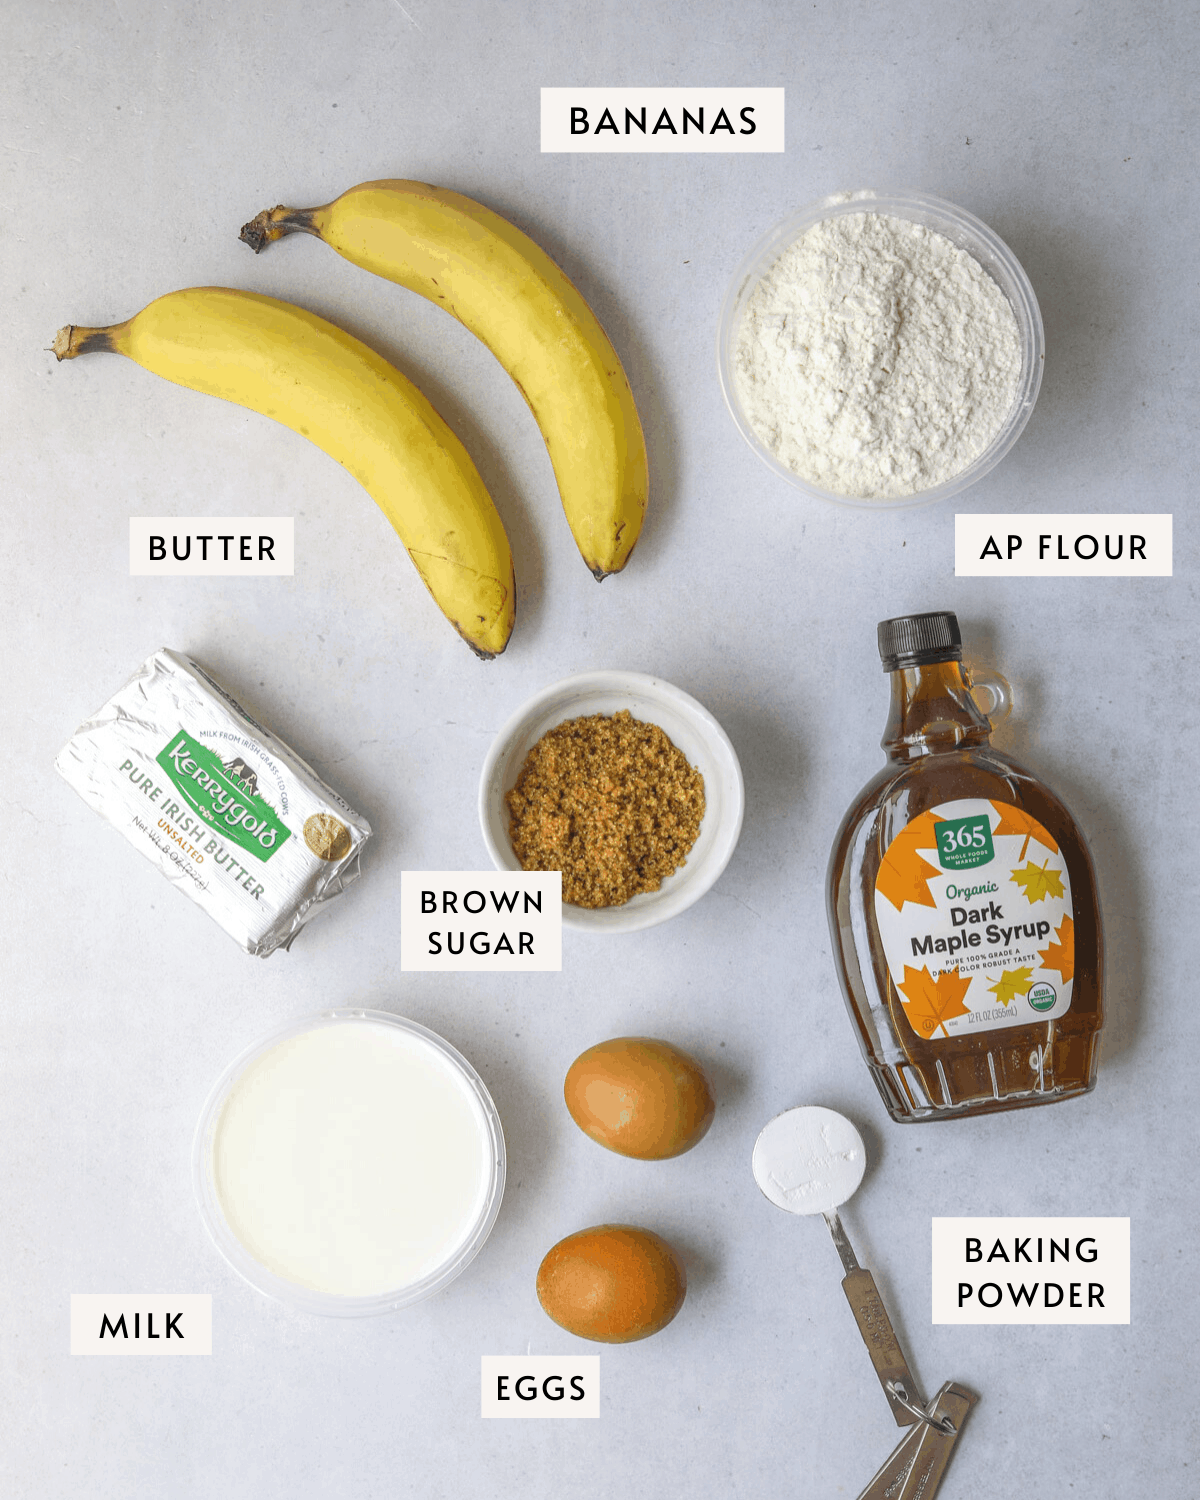 Recipe ingredients on a blue background; two bananas, brown sugar, eggs, maple syrup, butter, milk